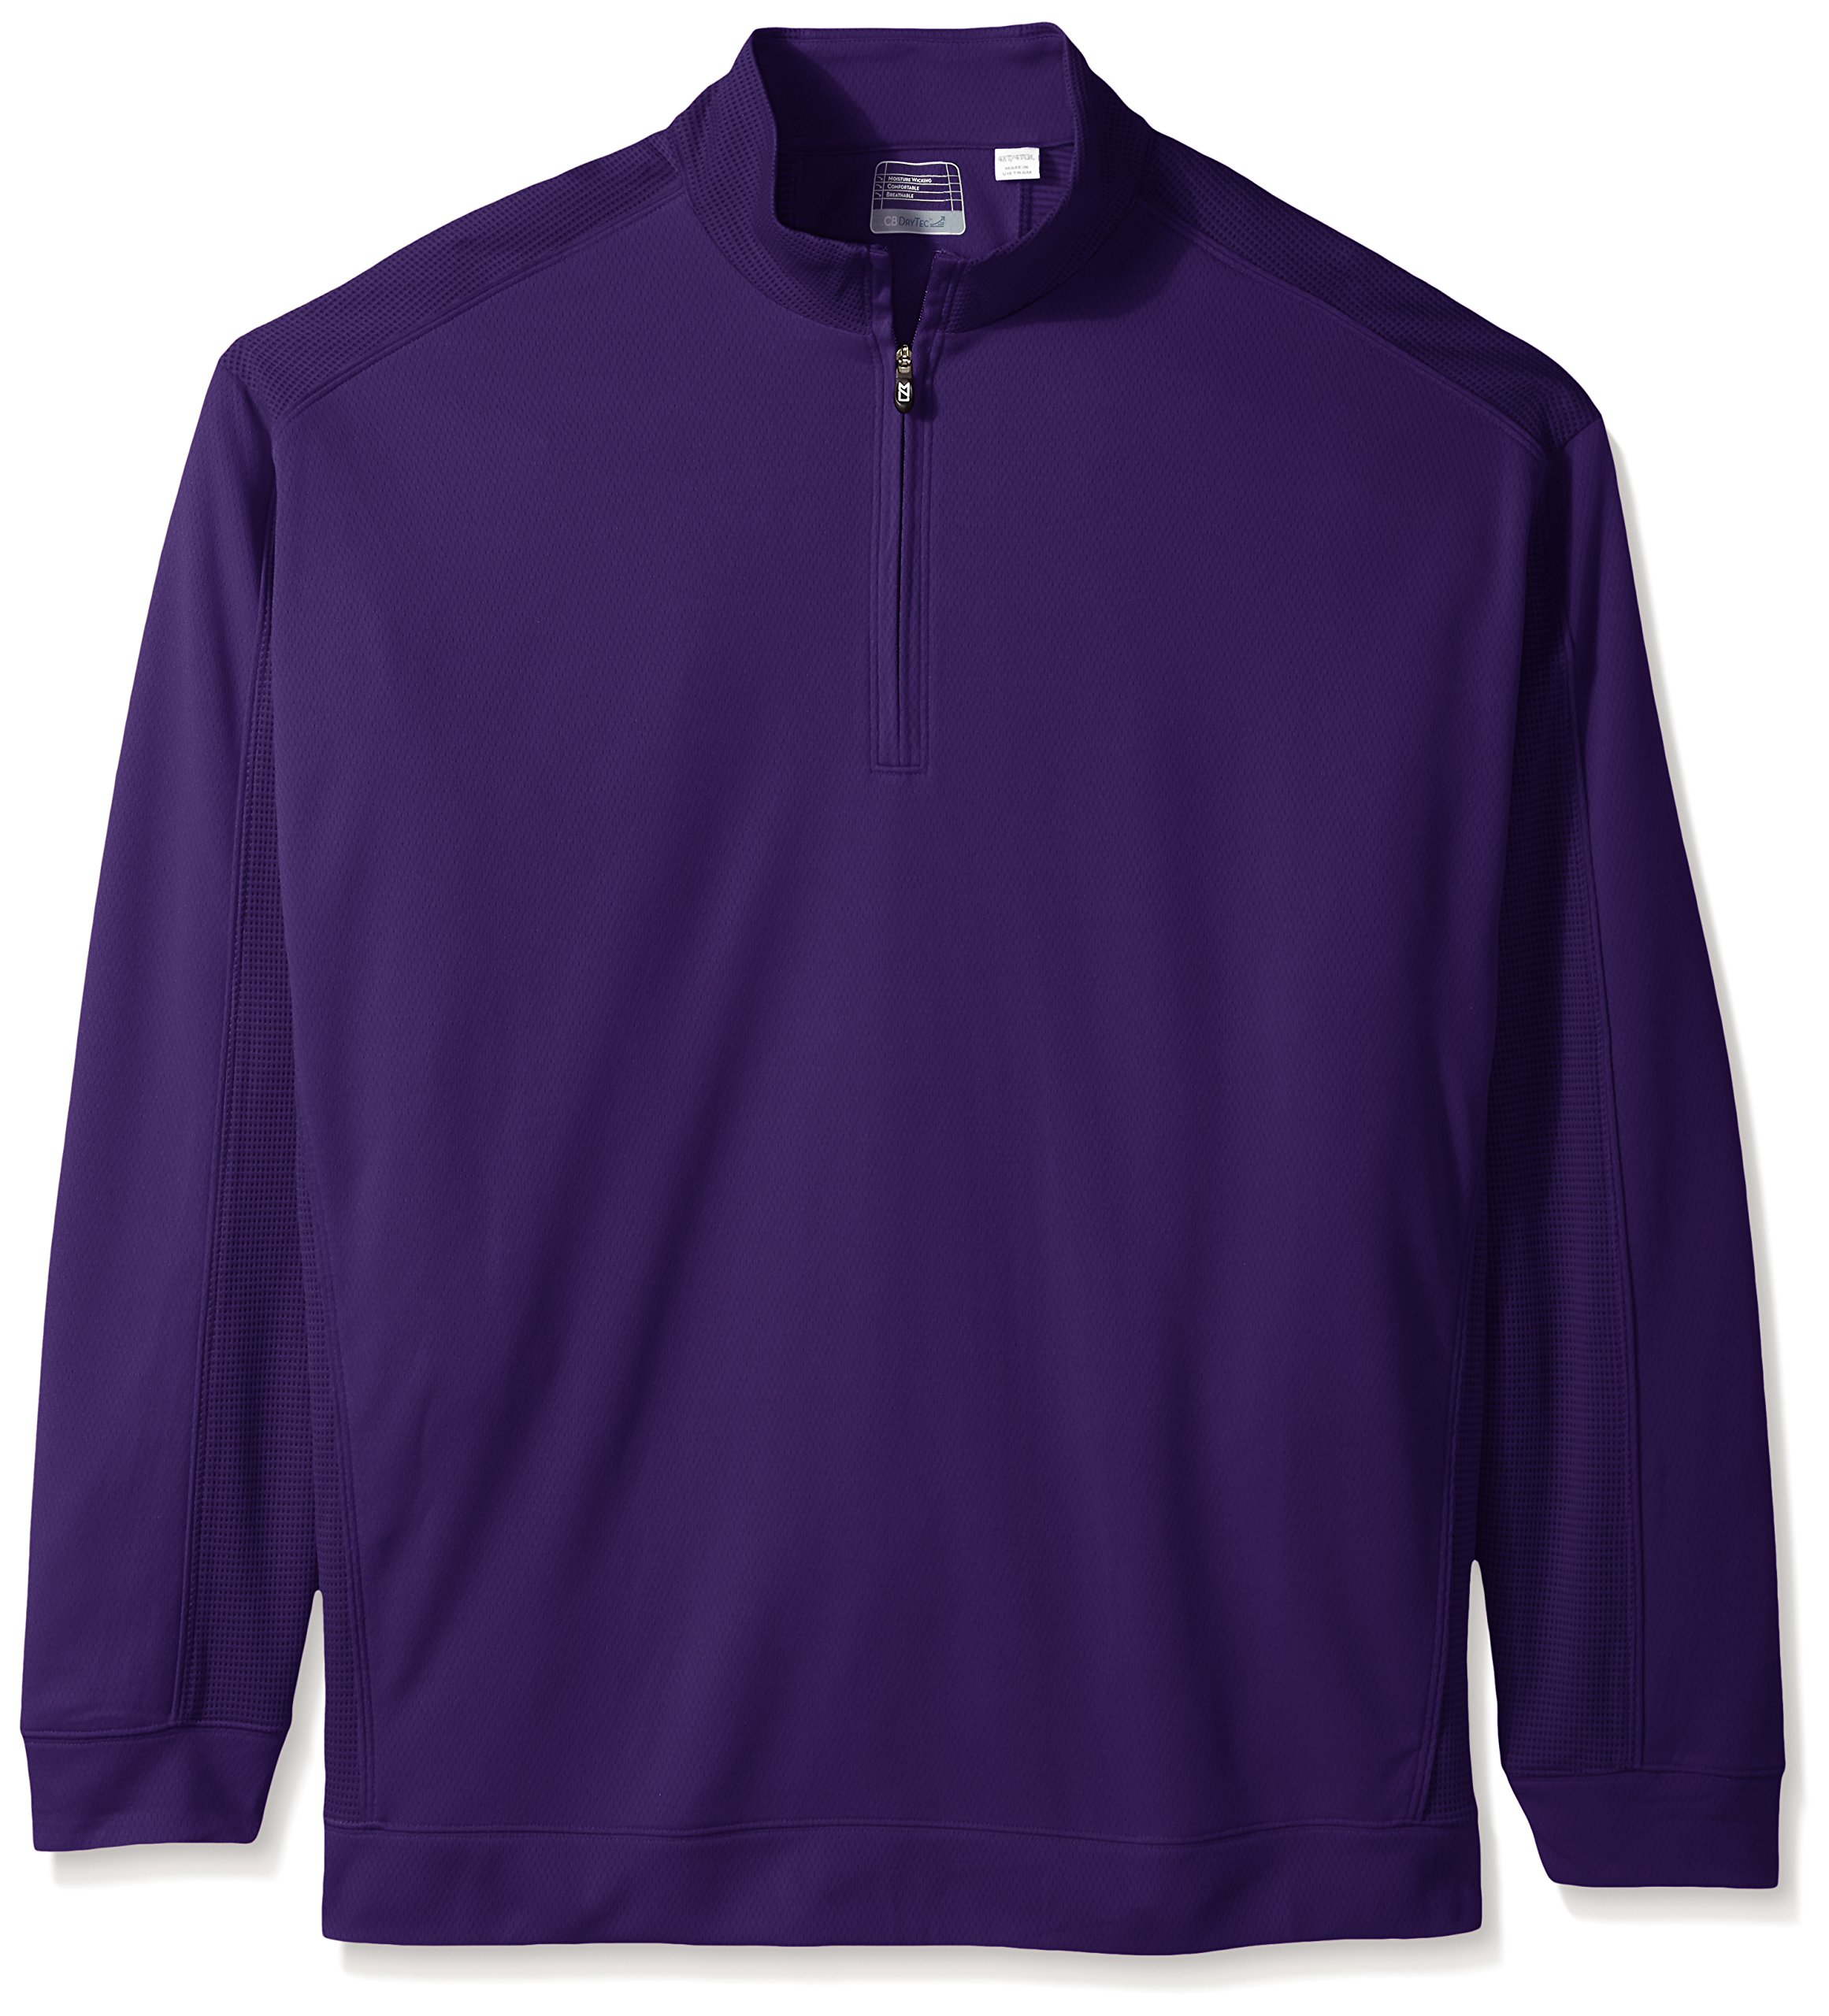 Cutter & Buck Men's Big Drytec Edge Half Zip, College Purple, 4X/Tall